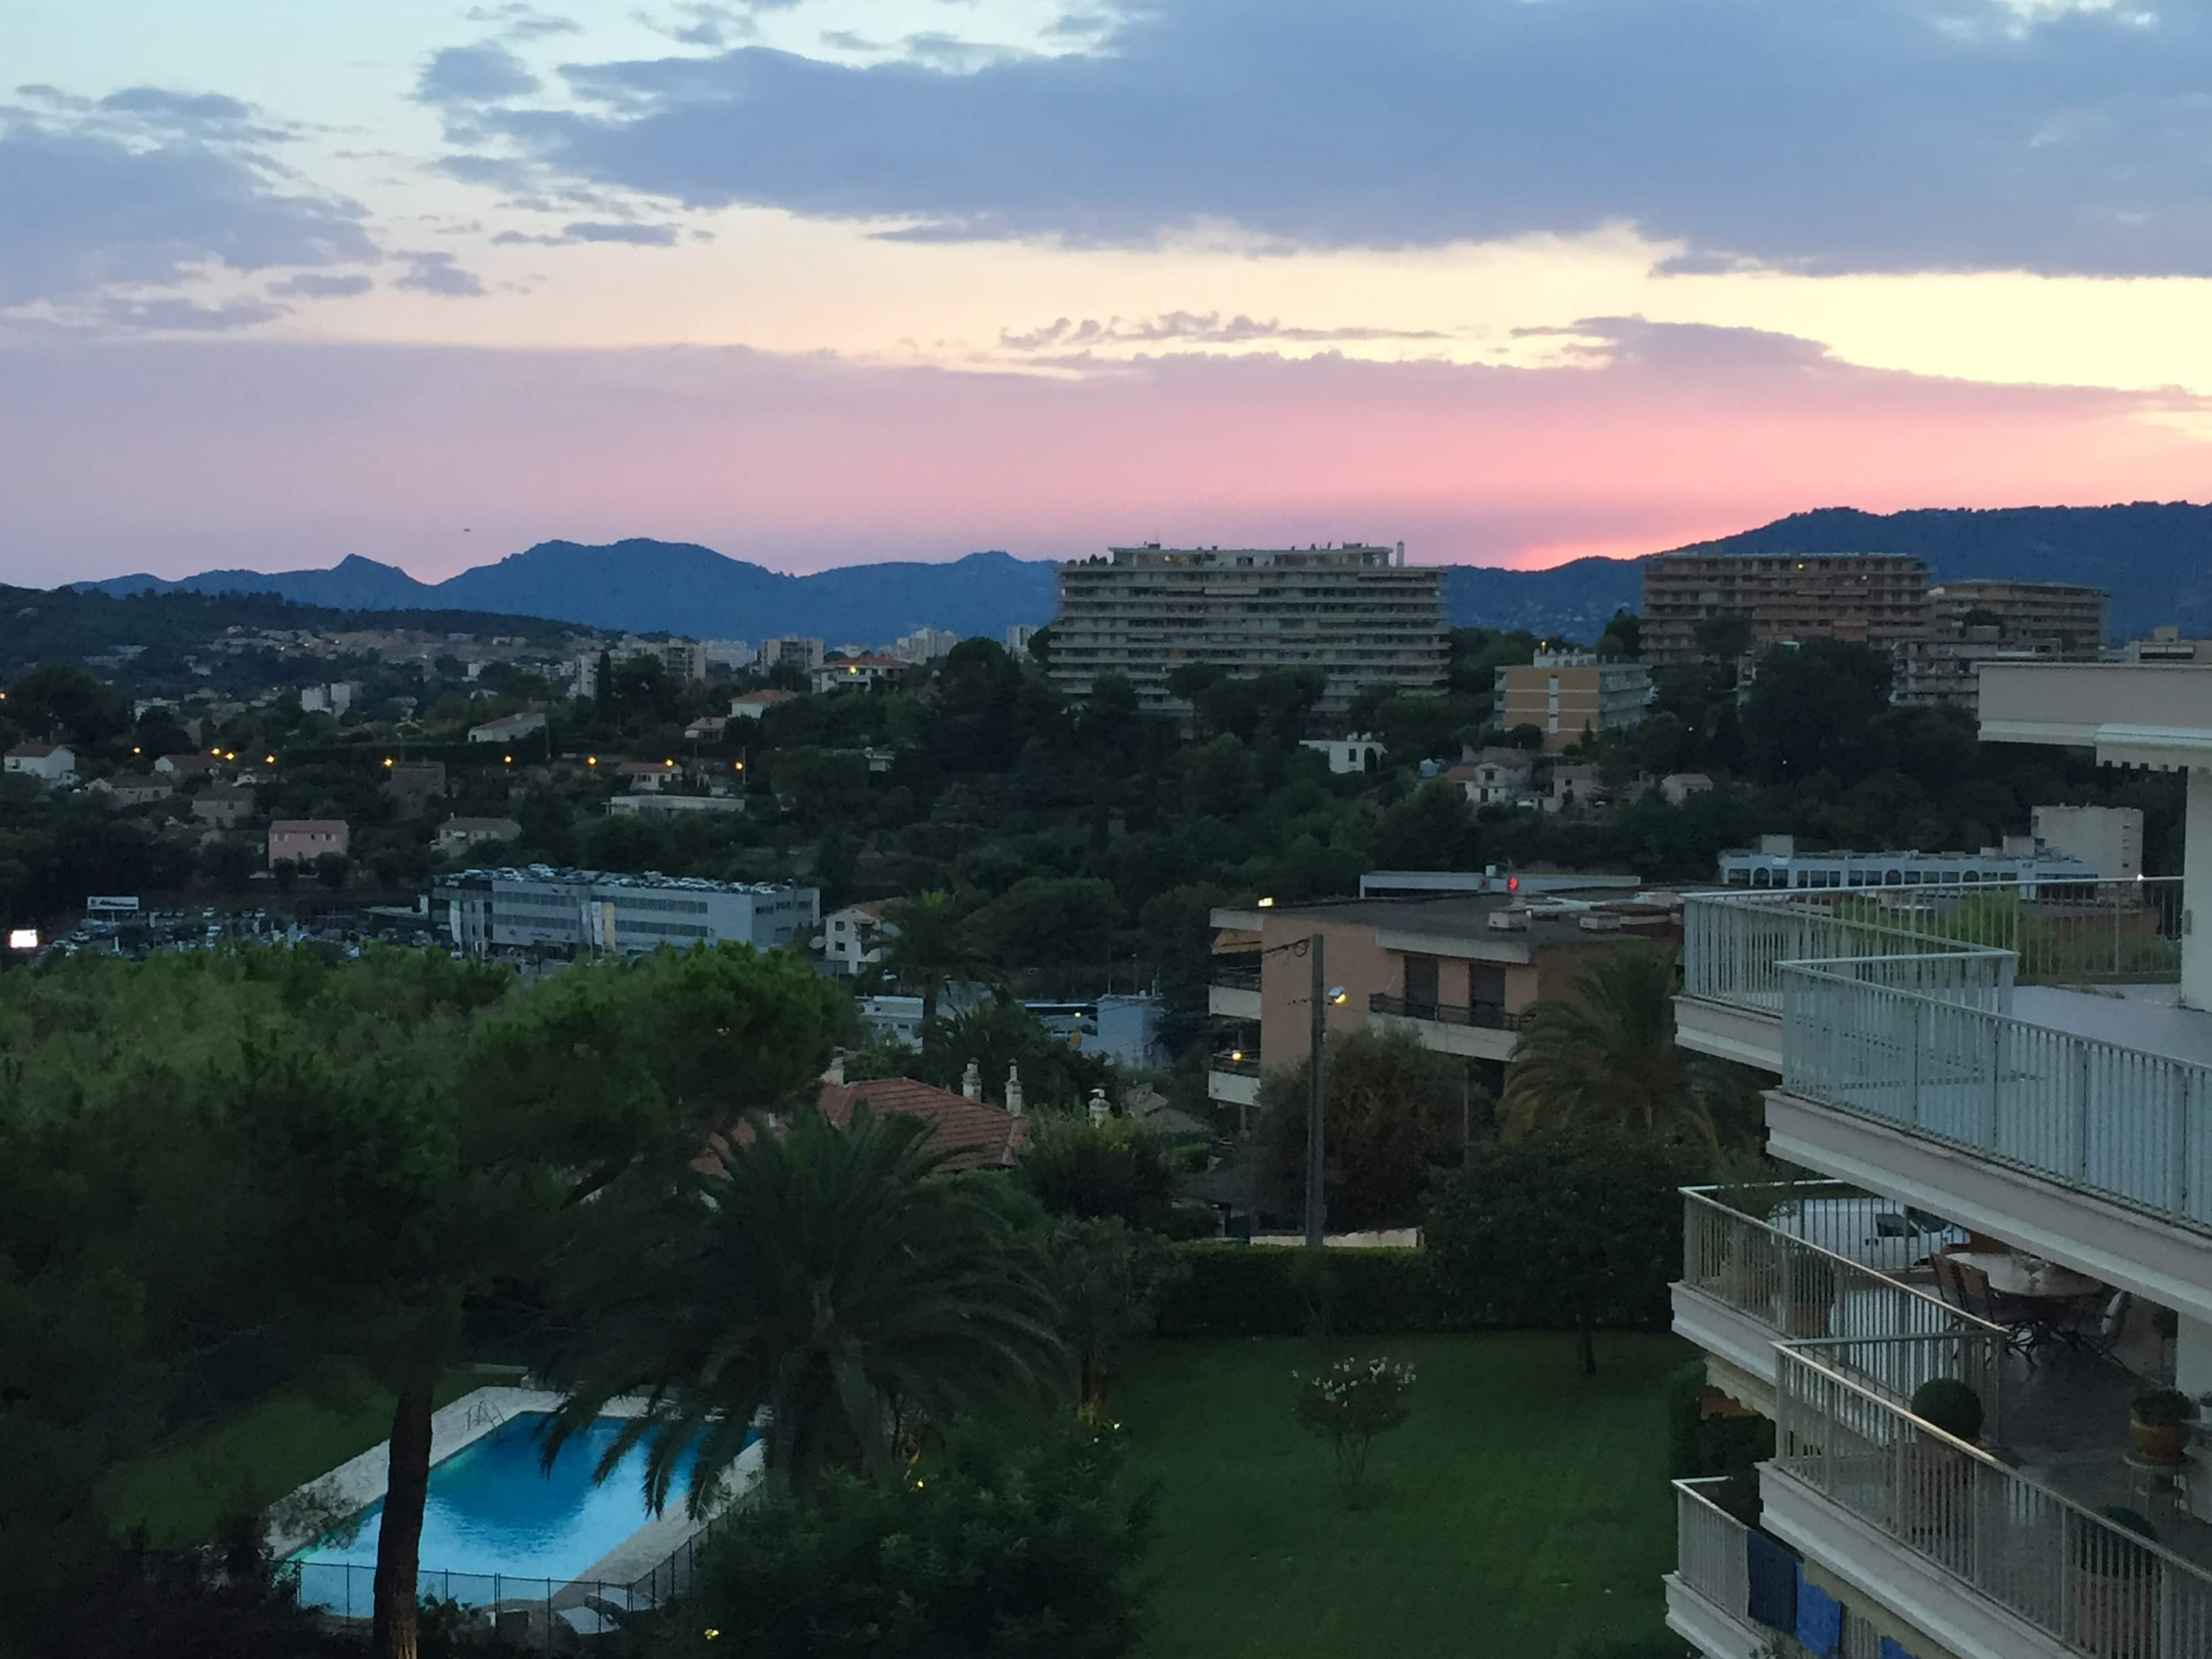 Sunsets from Le Cannet